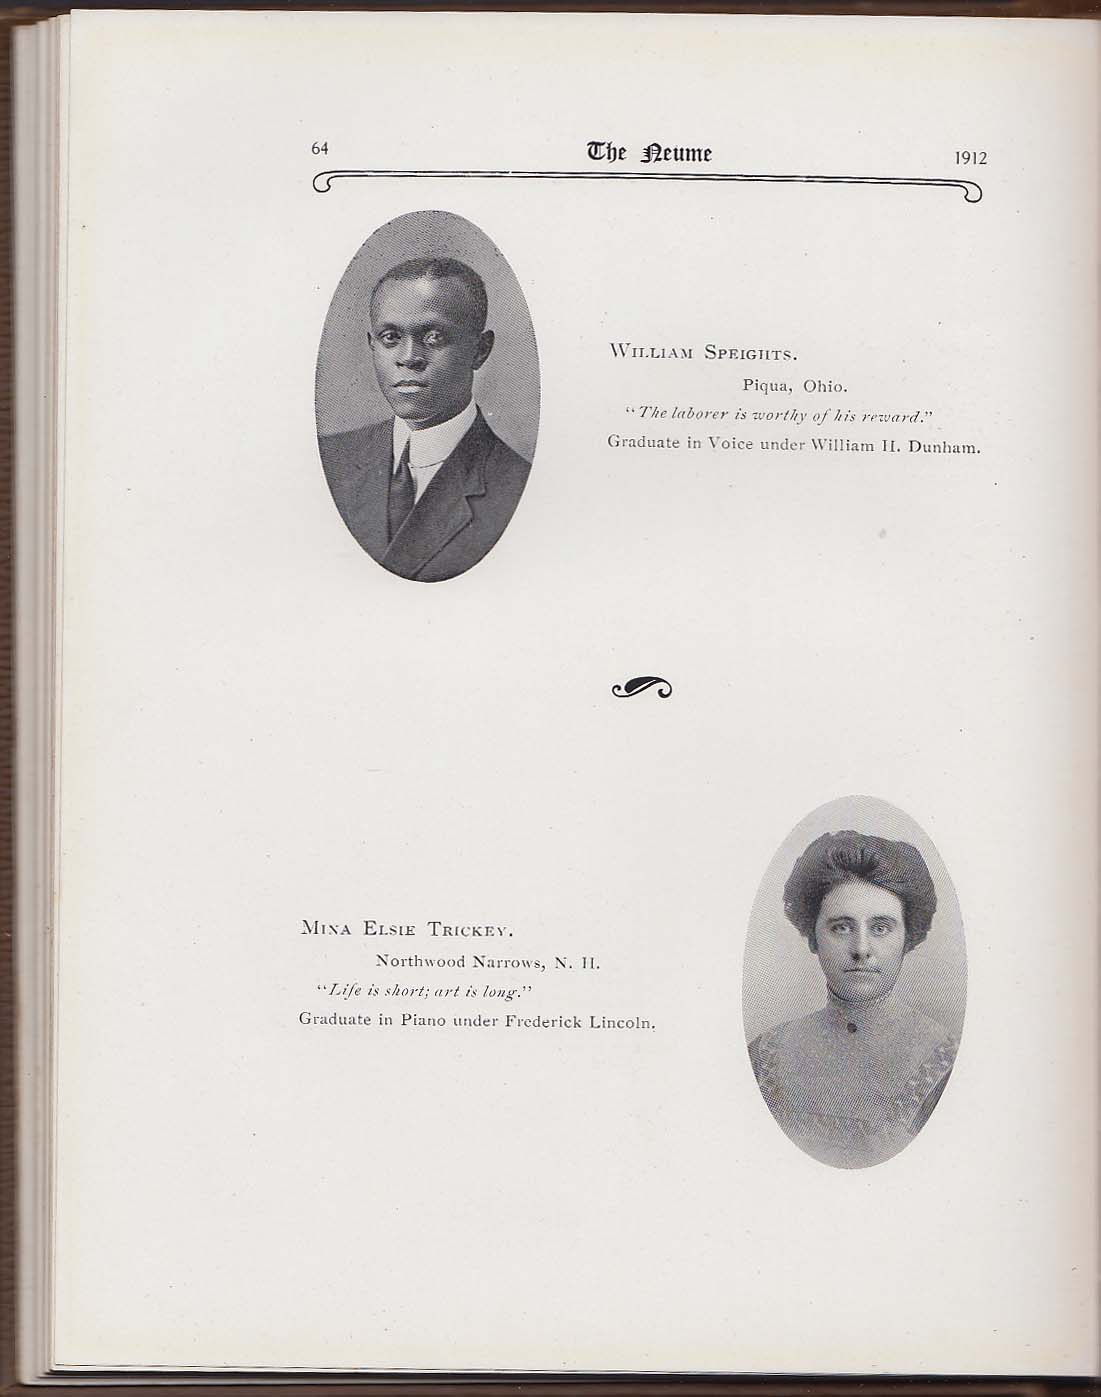 Image for The Neume 1912 Yearbook New England Conservatory of Music Boston Massachusetts